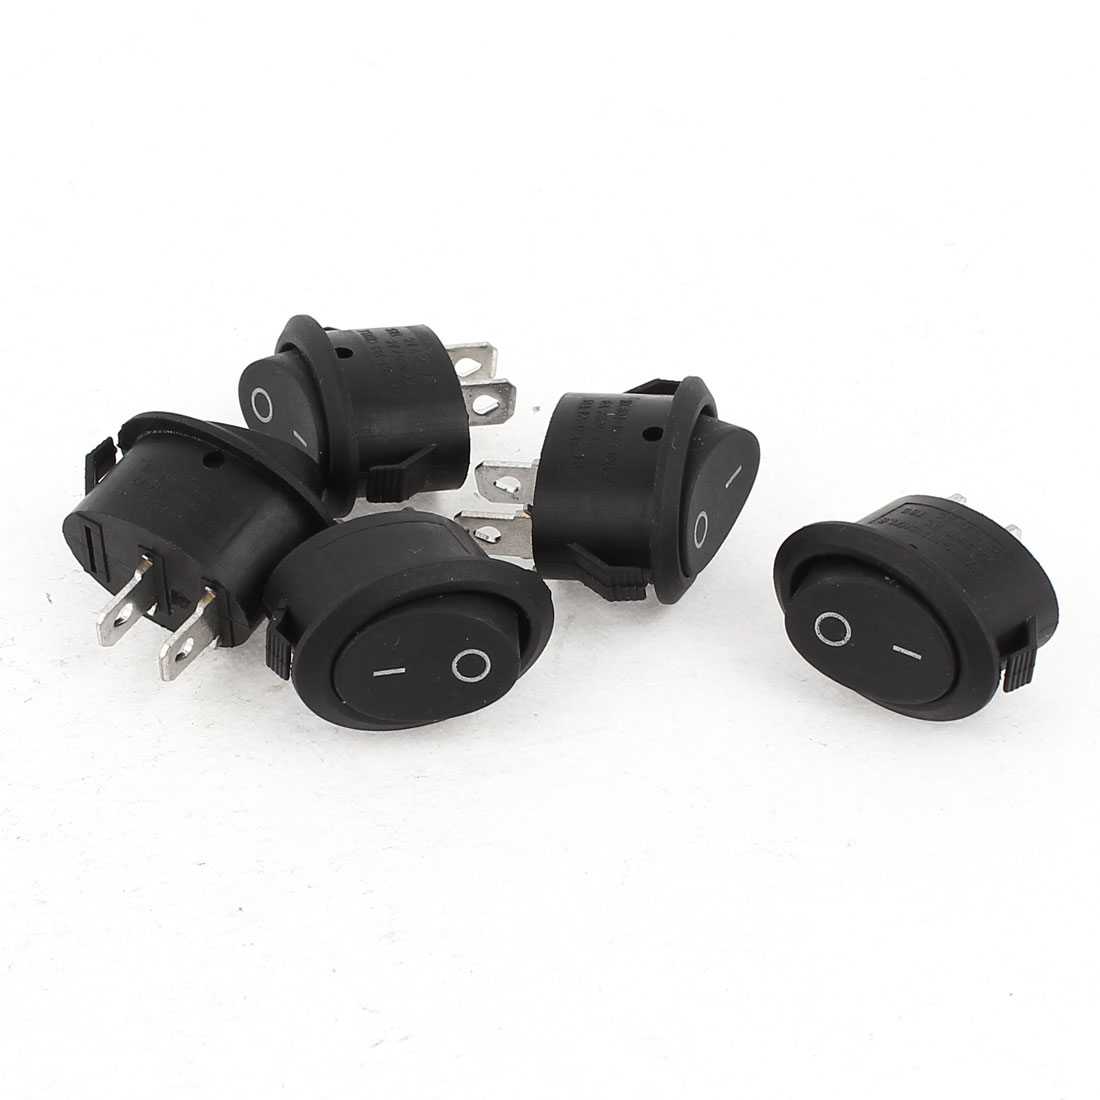 5 Pcs AC 6A/250V 10A/125V SPST On/Off Oval Rocker Switch